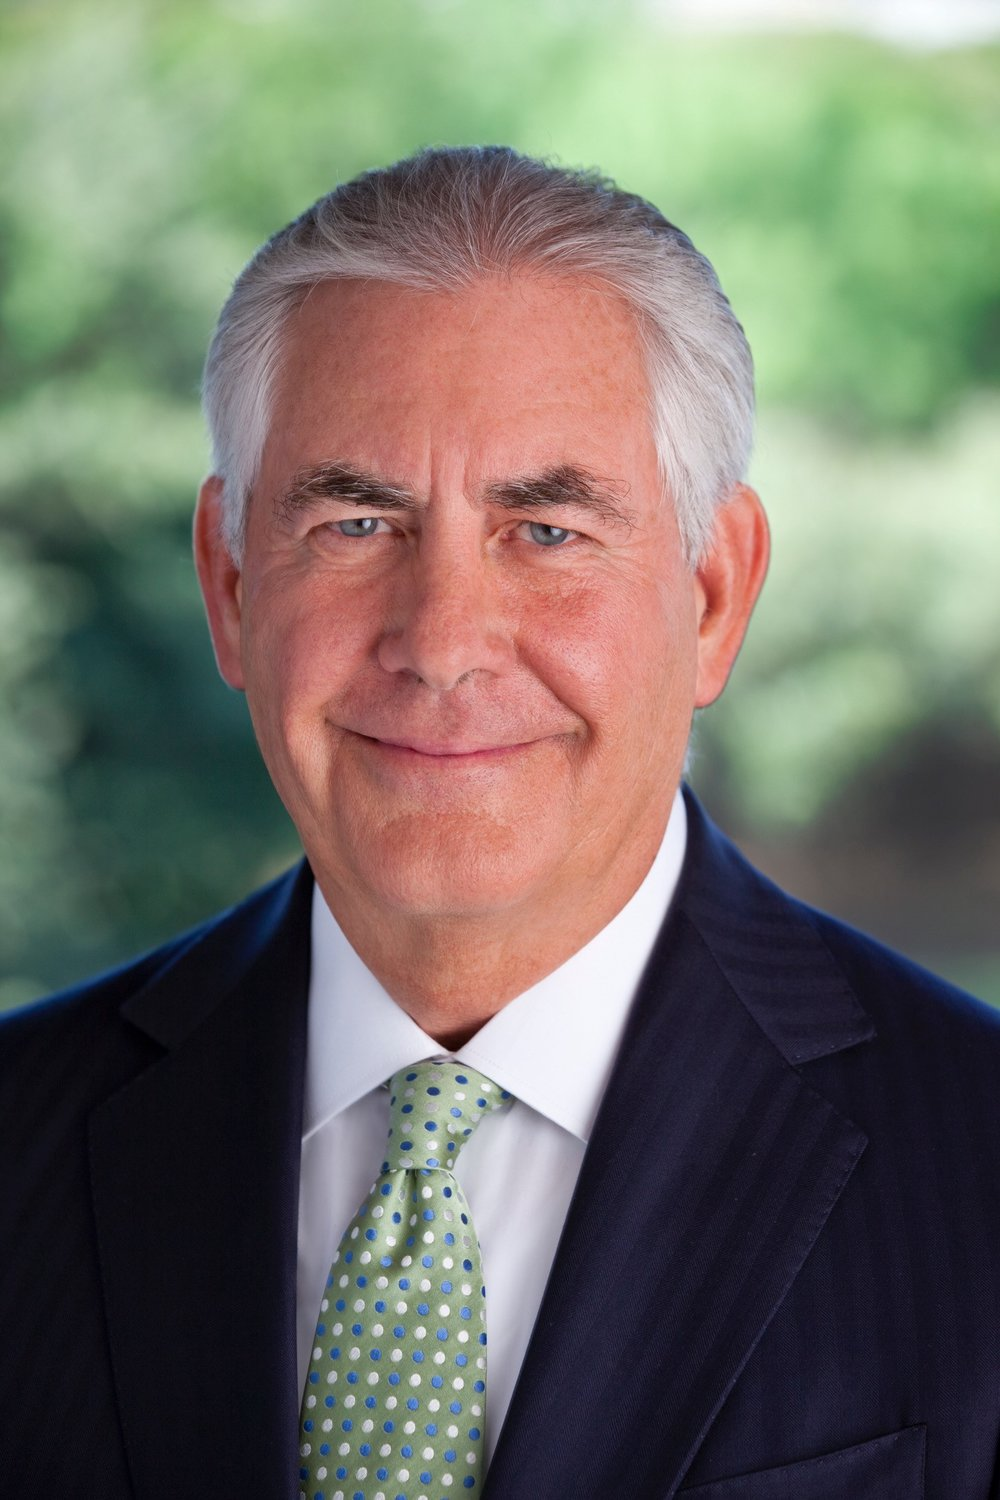 U.S. Secretary of State Rex Tillerson. Credit: Wikimedia Commons.